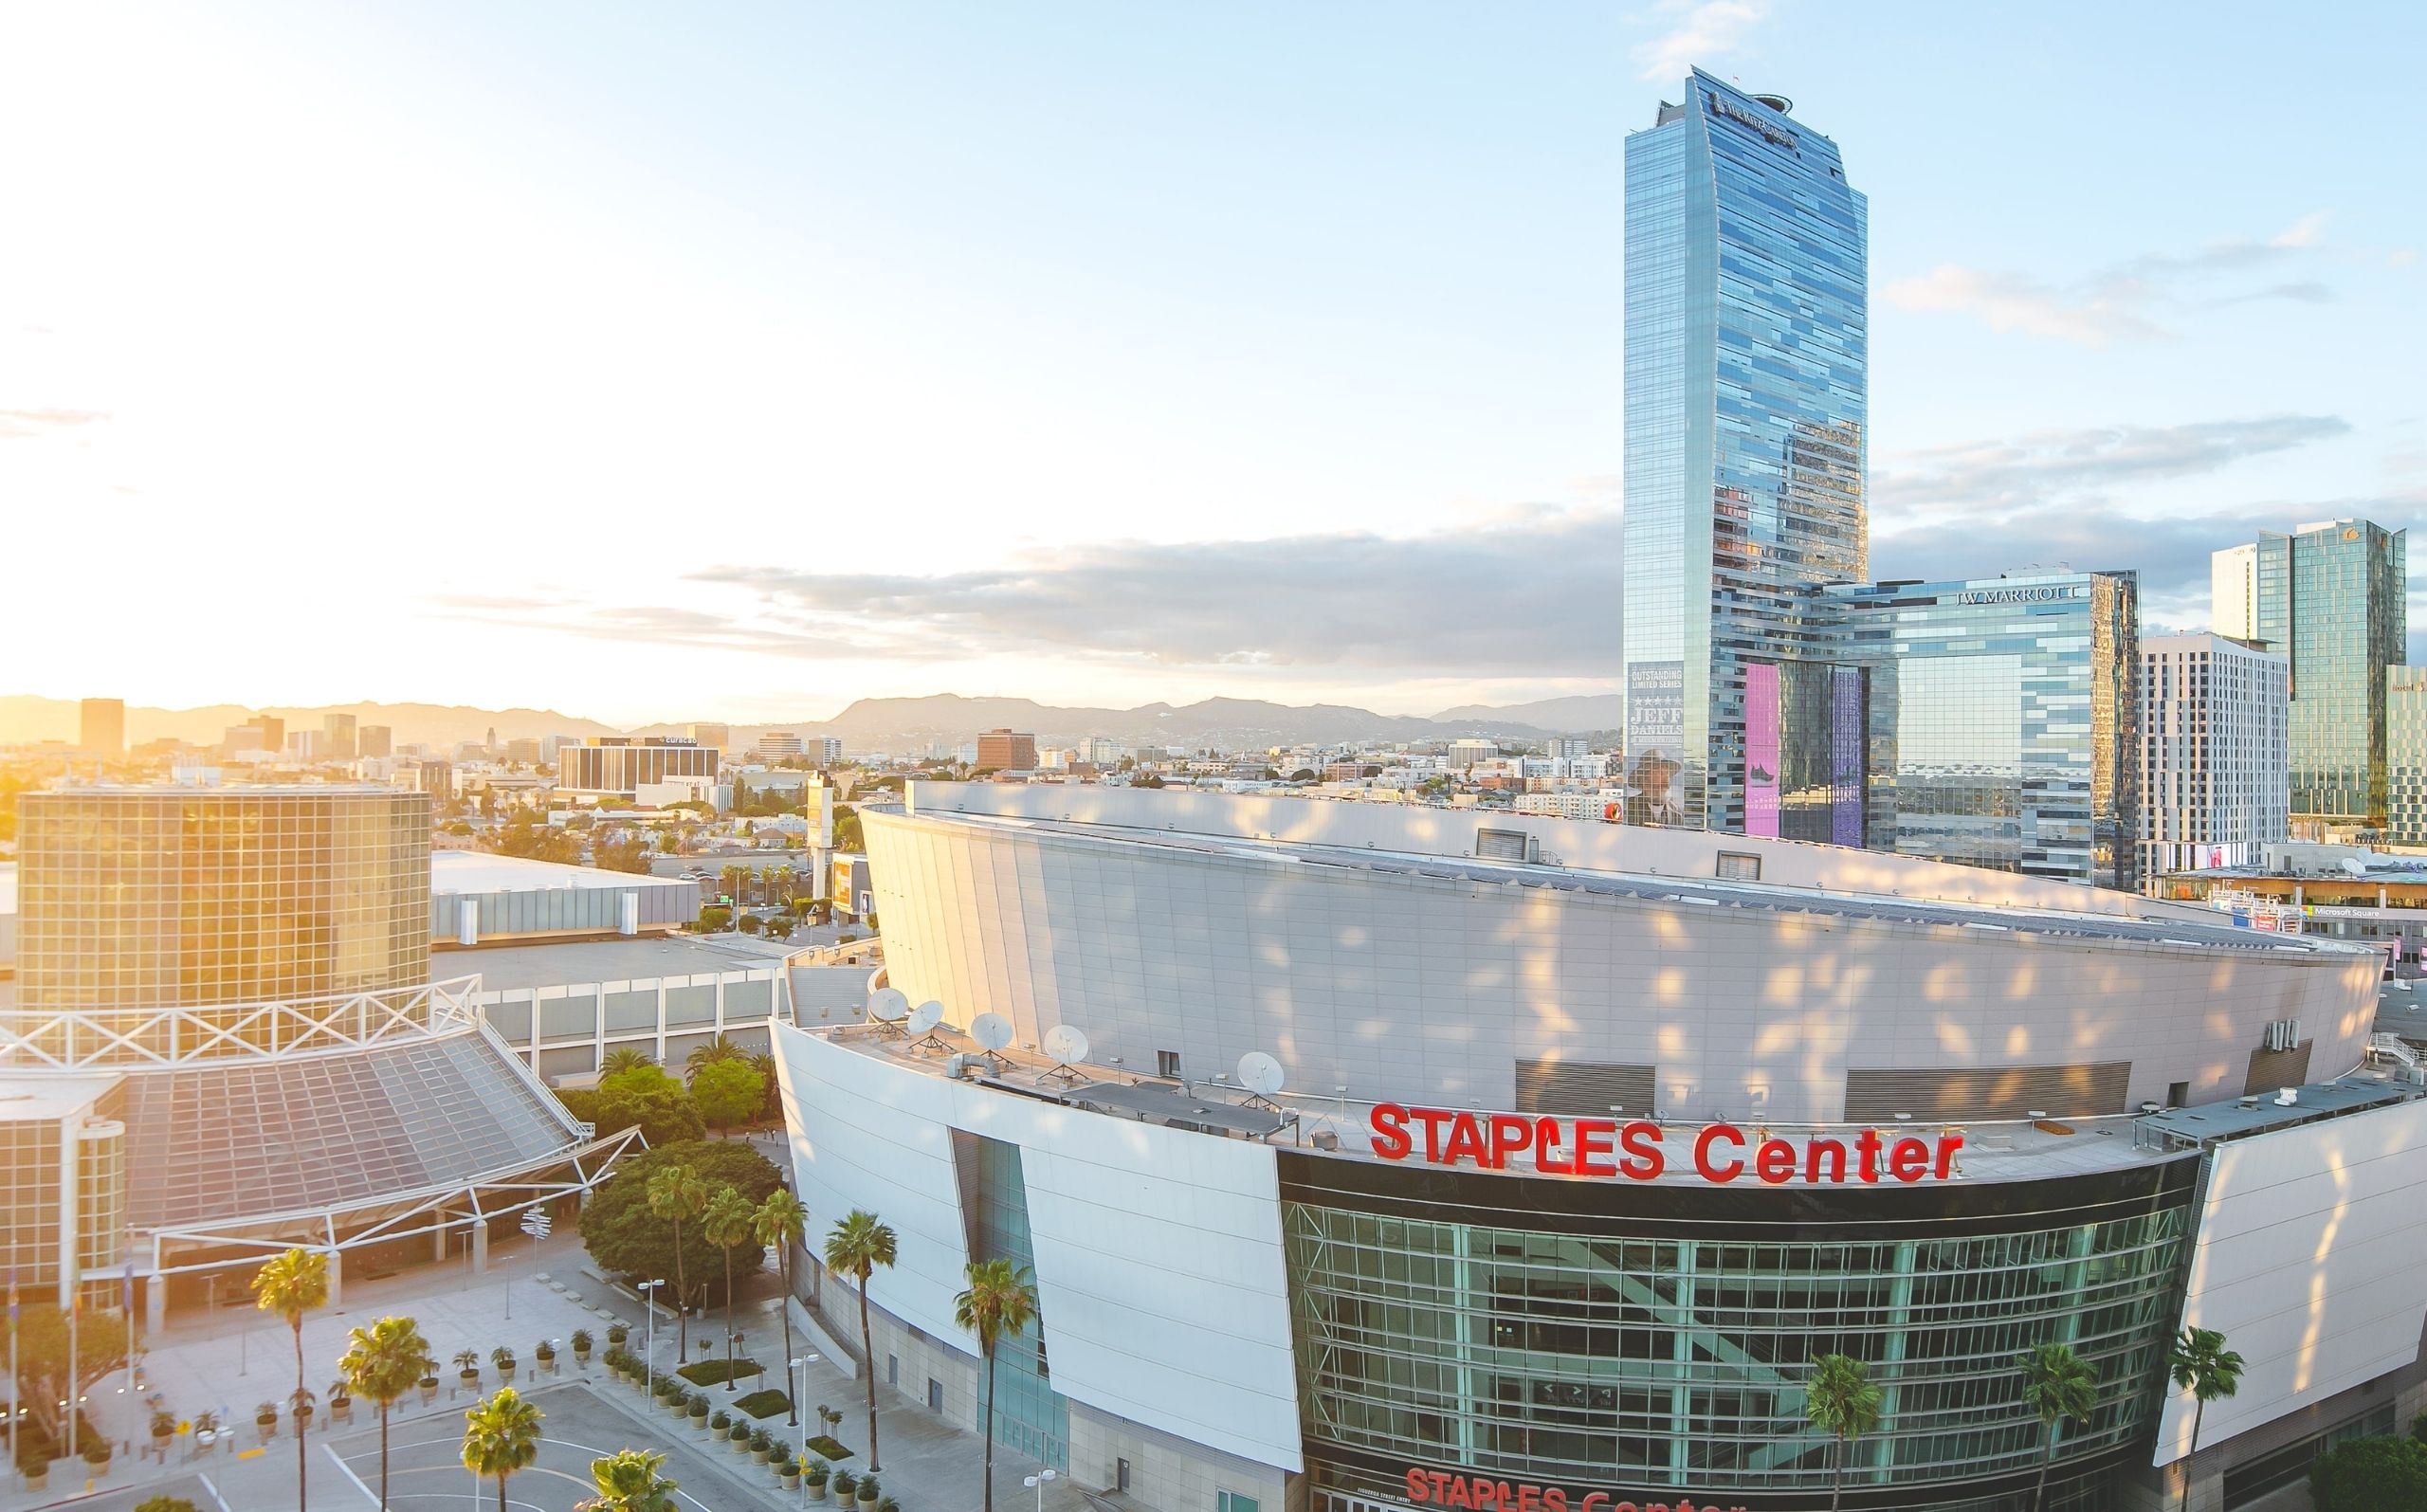 Staples Center near The Crest